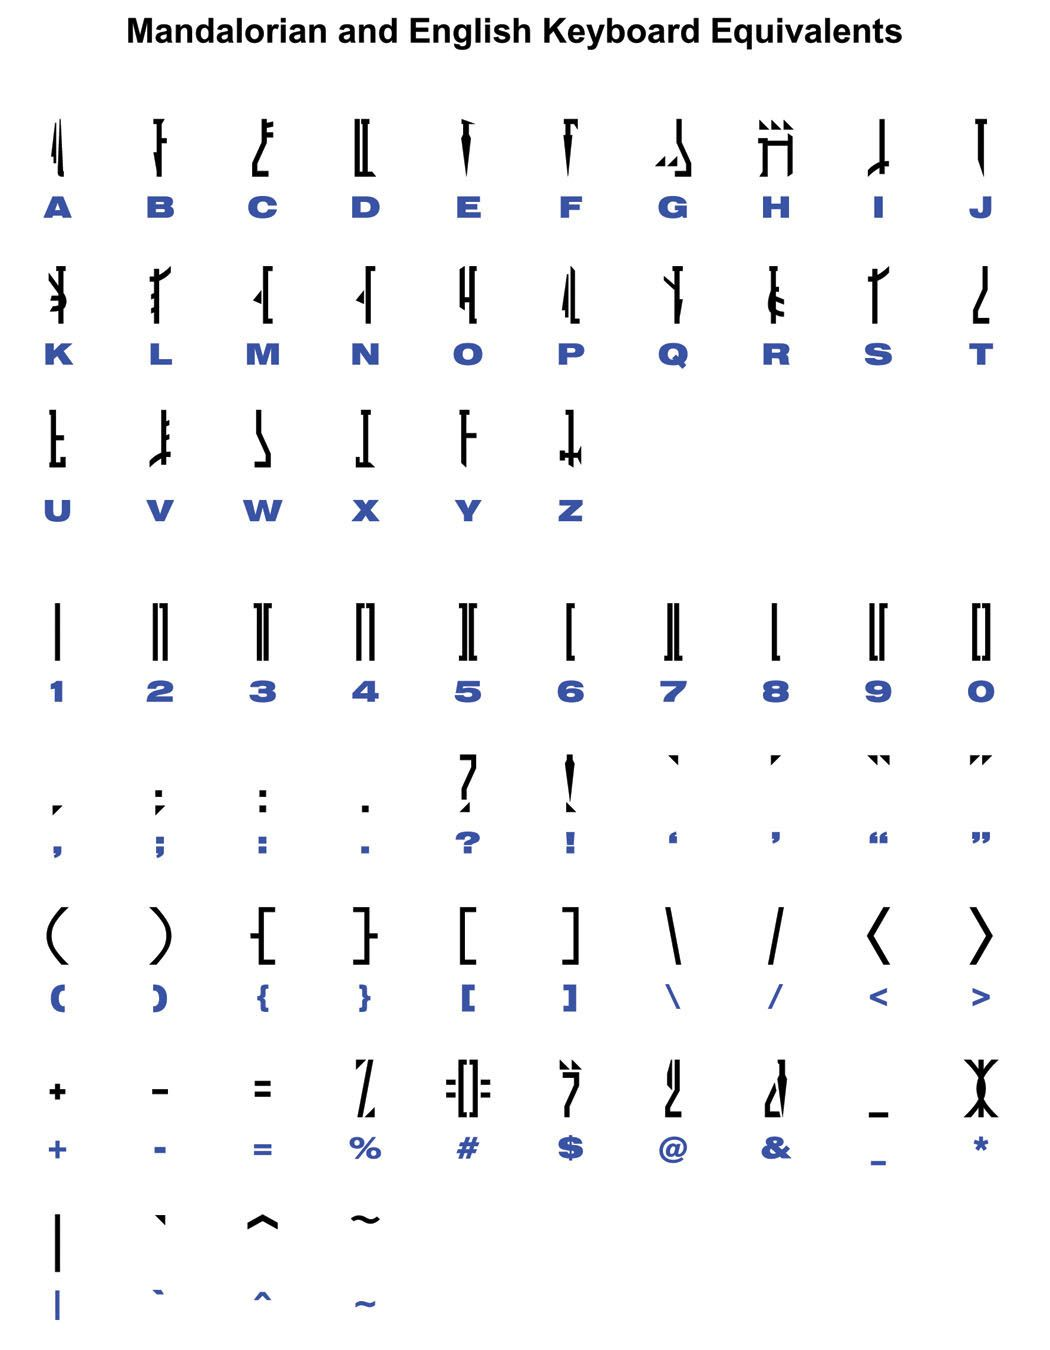 Mandoa alphabet daughters of deathwatch star wars pinterest star wars mandalorian alphabet i love this because i have an interest in star wars languages someone has actually made an entire spoken language for the biocorpaavc Image collections